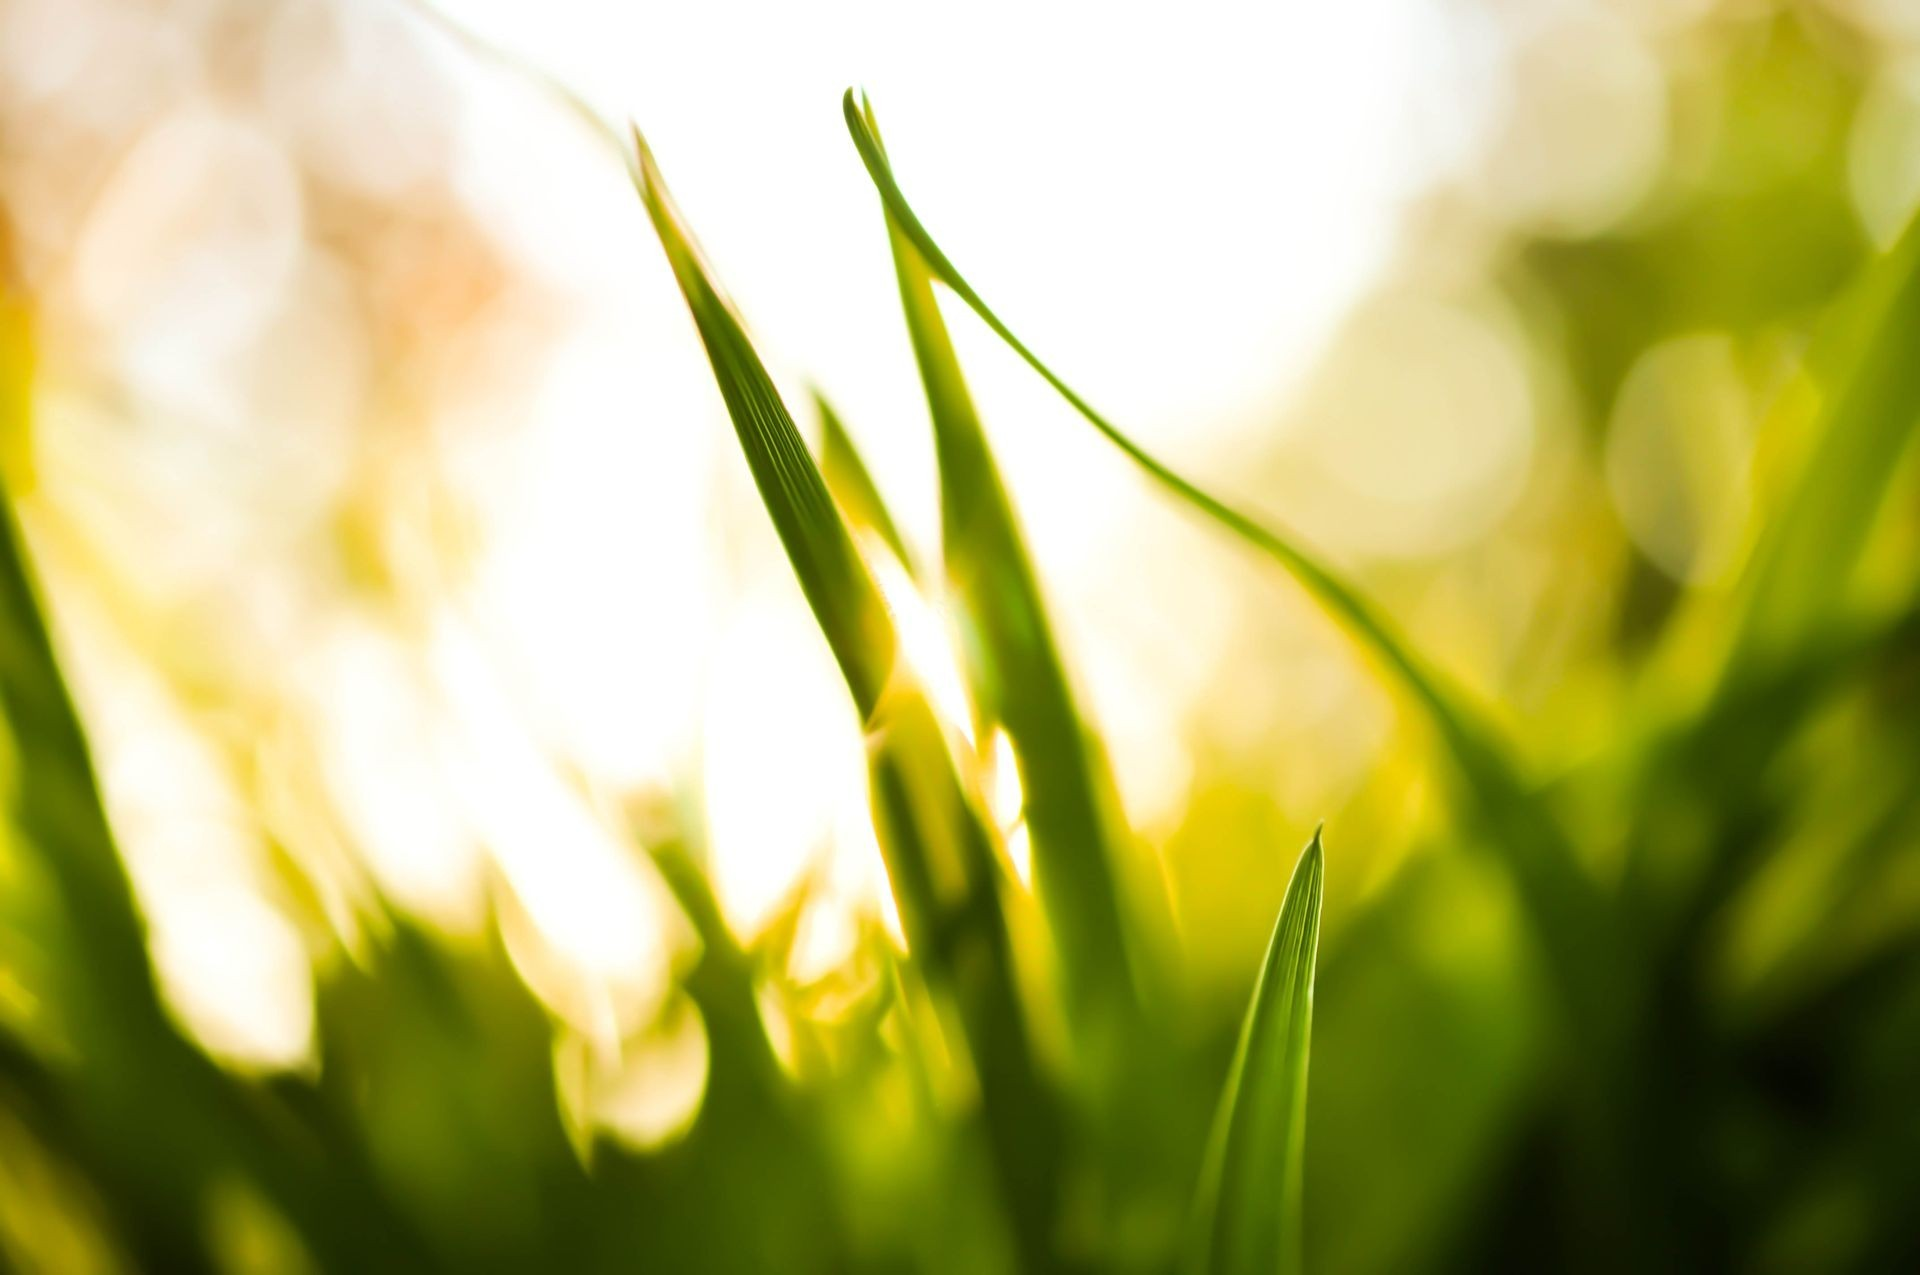 sunlight wallpaper grass